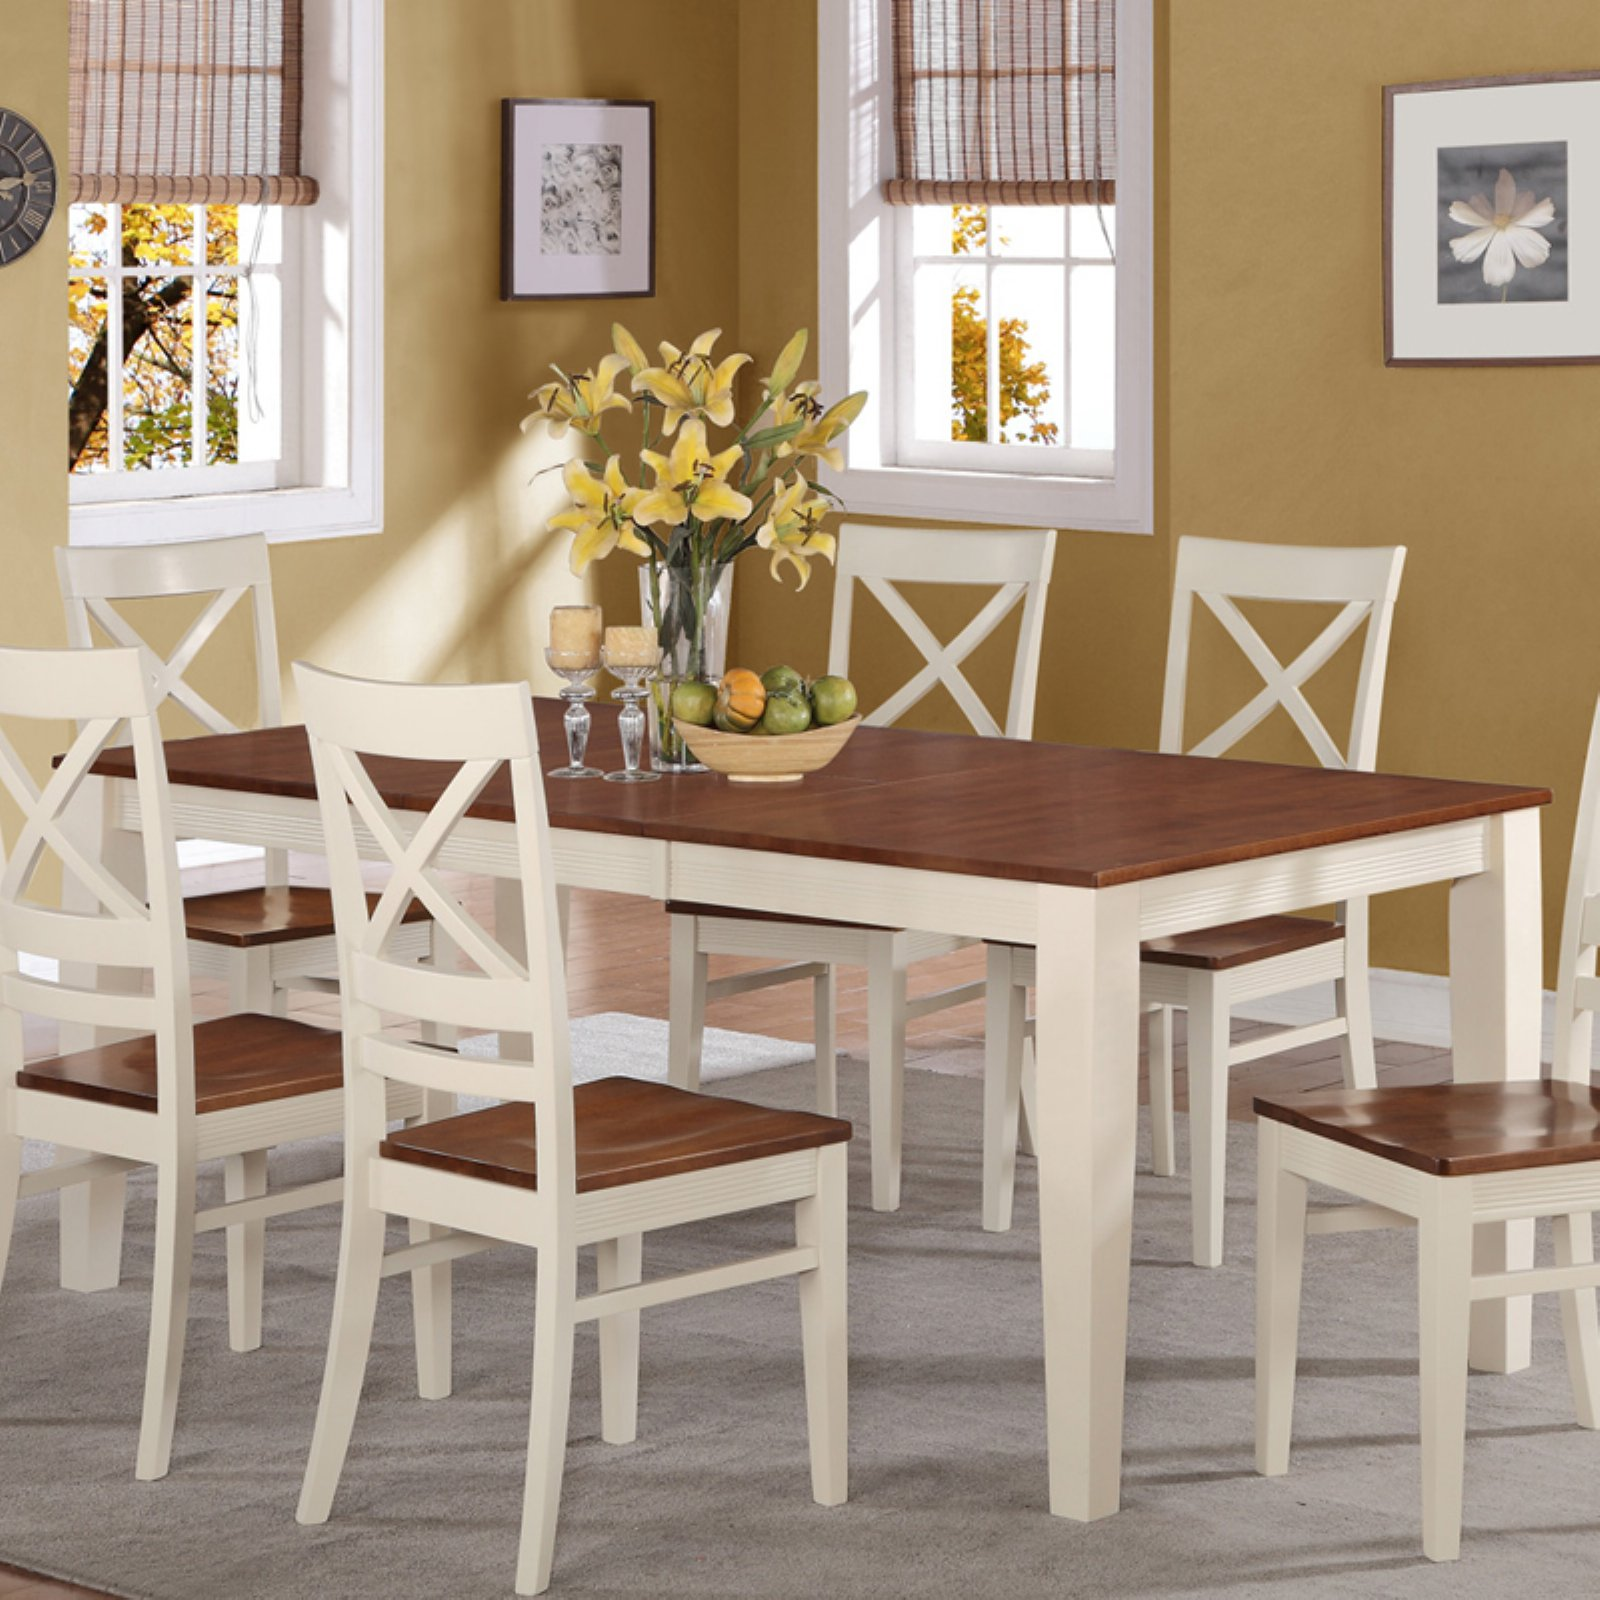 East West Furniture Quincy 60-78 Inch Rectangular Dining Table